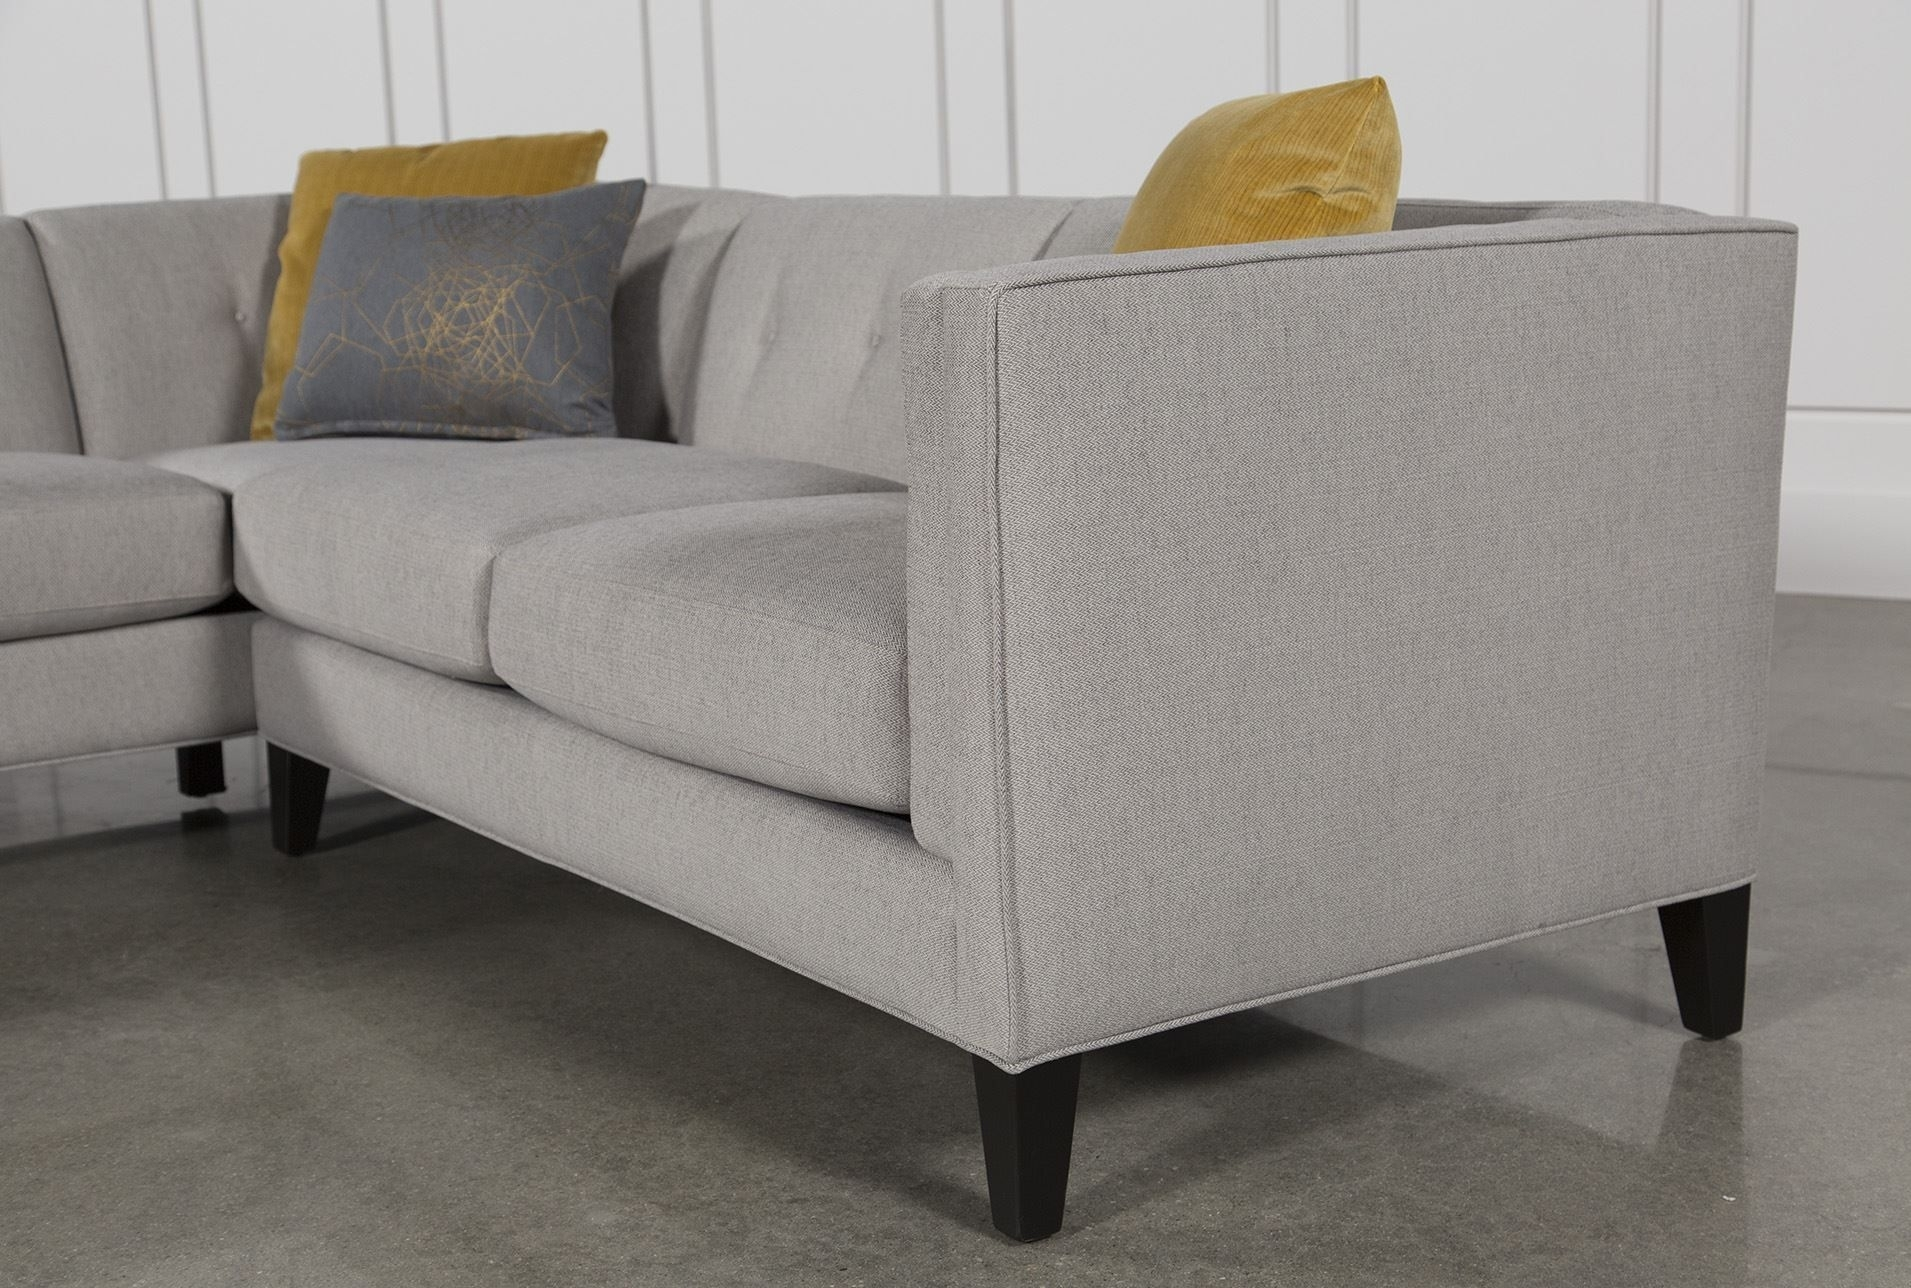 Avery 2 Piece Sectional W/laf Armless Chaise | Decorating Regarding Avery 2 Piece Sectionals With Laf Armless Chaise (Image 4 of 25)